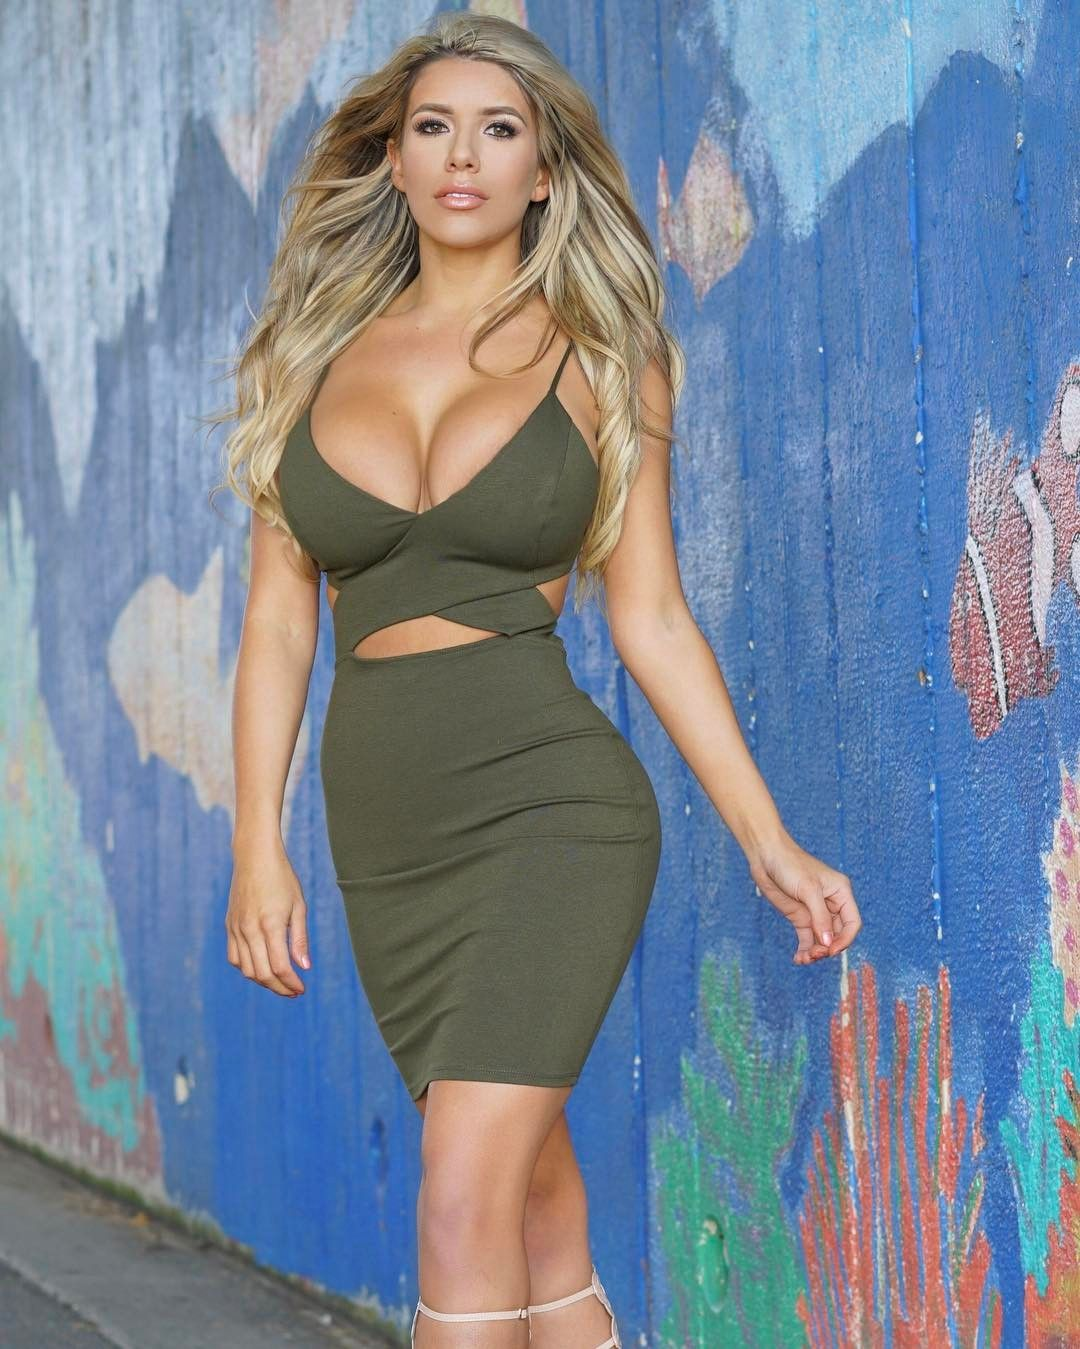 Cleavage Chantel Zales nude (88 photo), Topless, Is a cute, Boobs, braless 2019